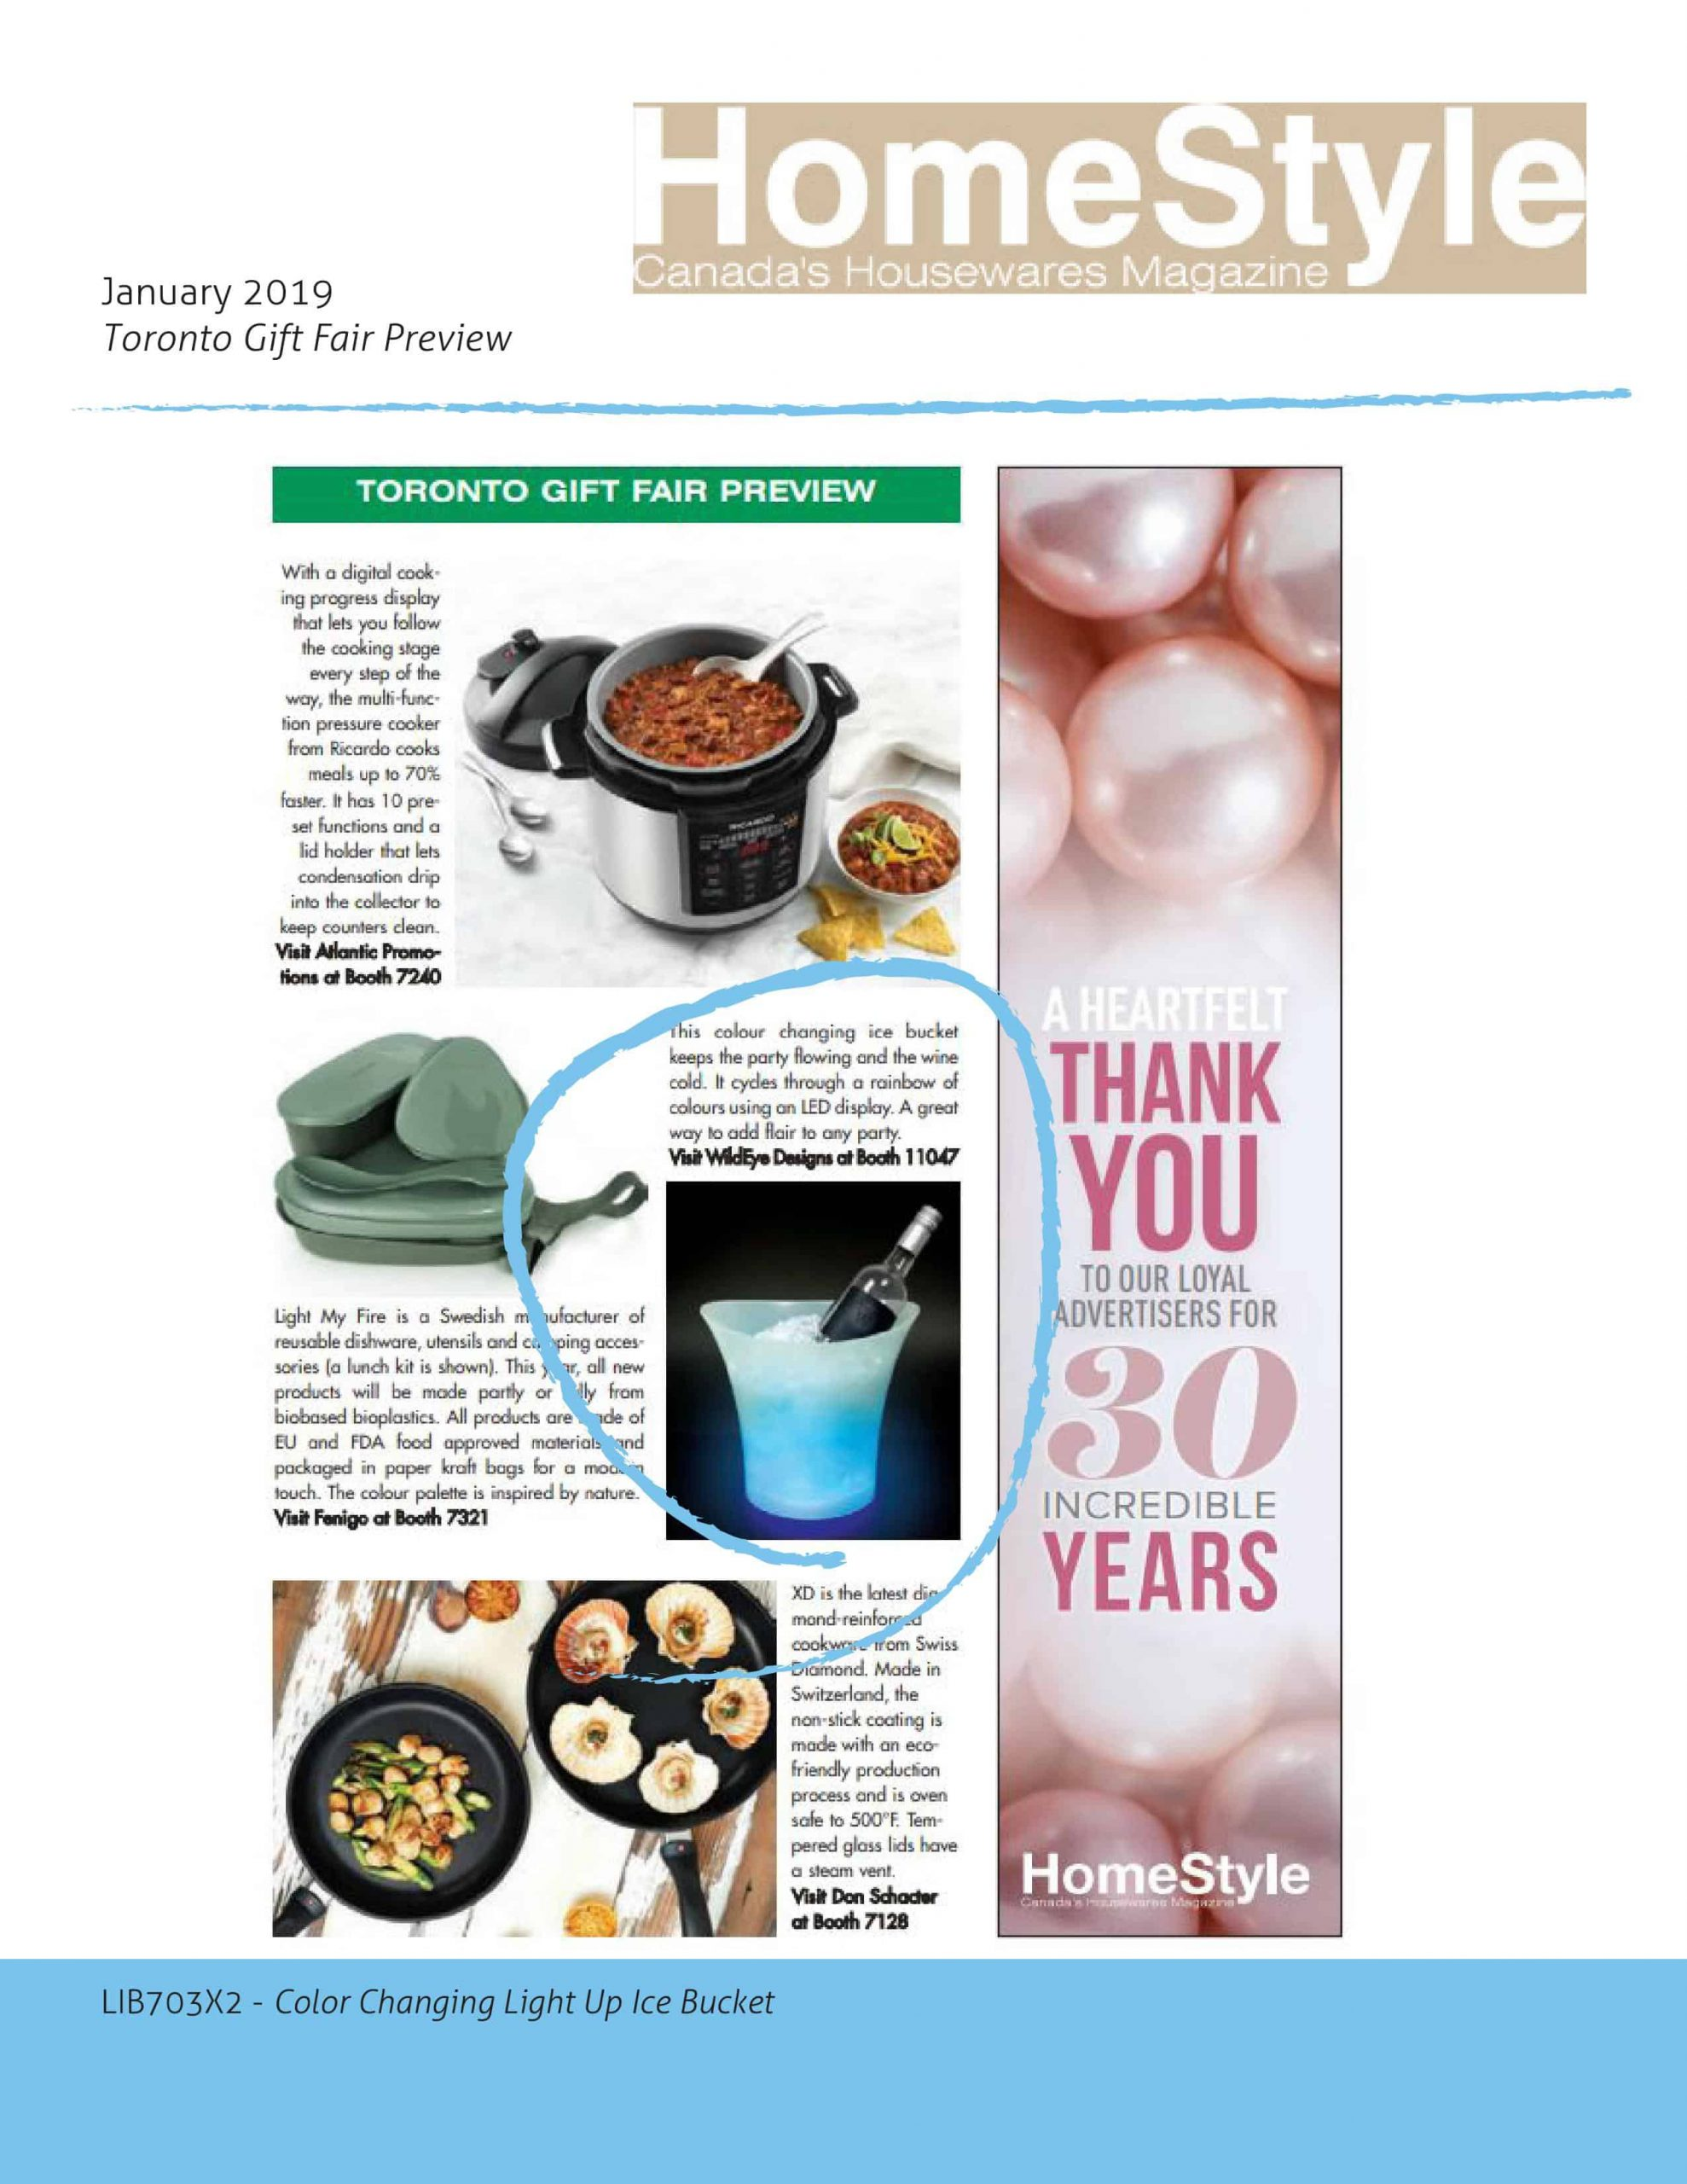 HomeStyle Canada's Housewares Magazine January 2019 Issue